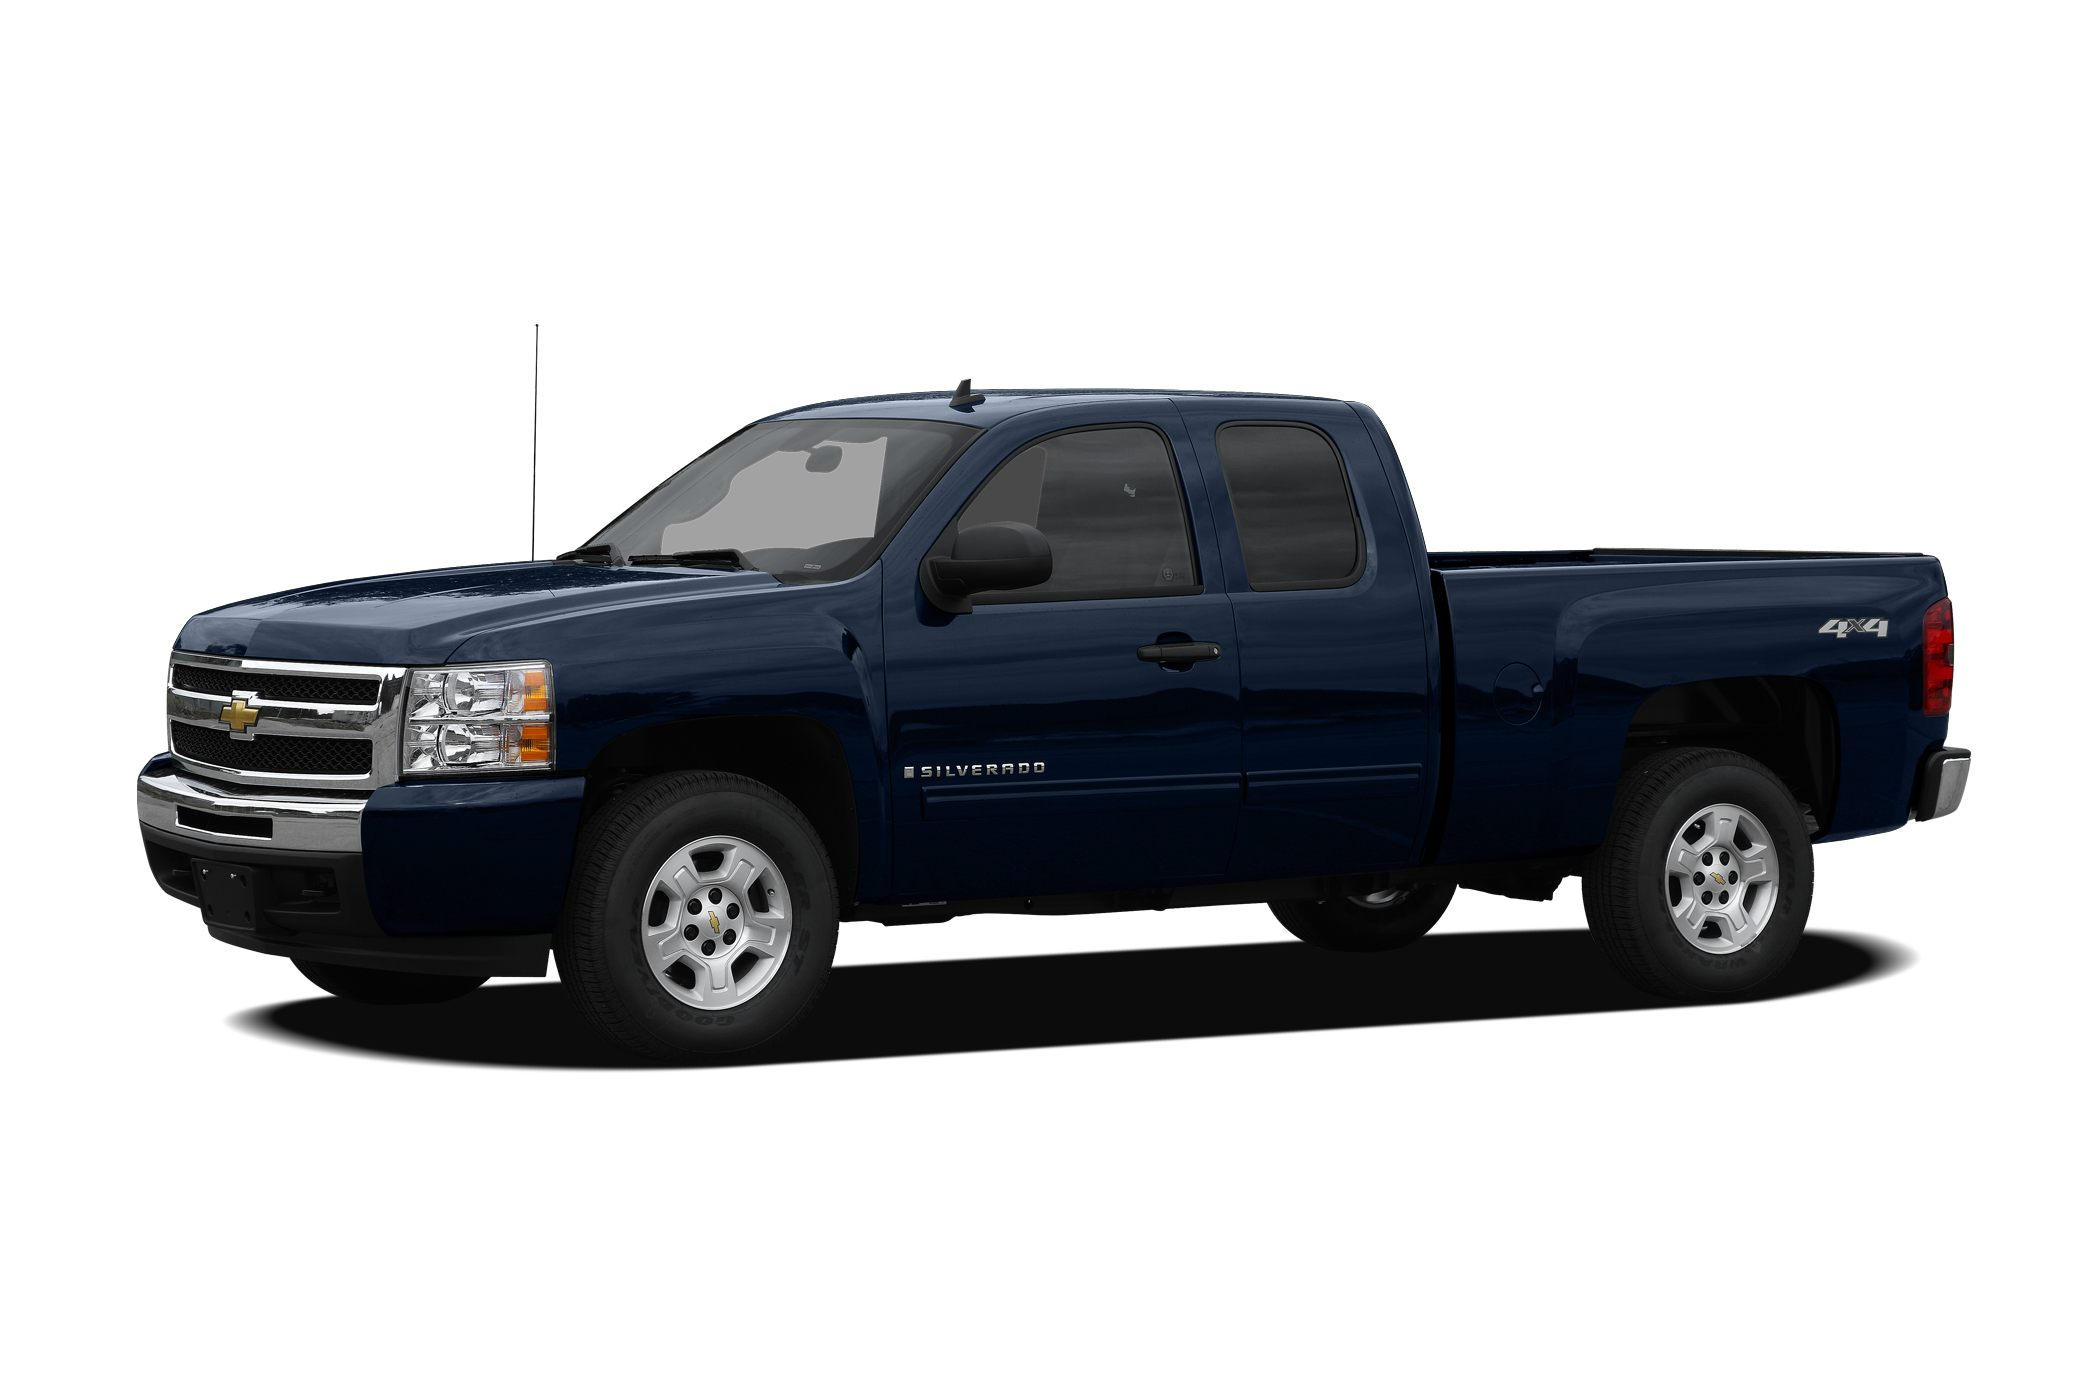 2010 Chevrolet Silverado 1500 LS Crew Cab Pickup for sale in Augusta for $19,900 with 83,355 miles